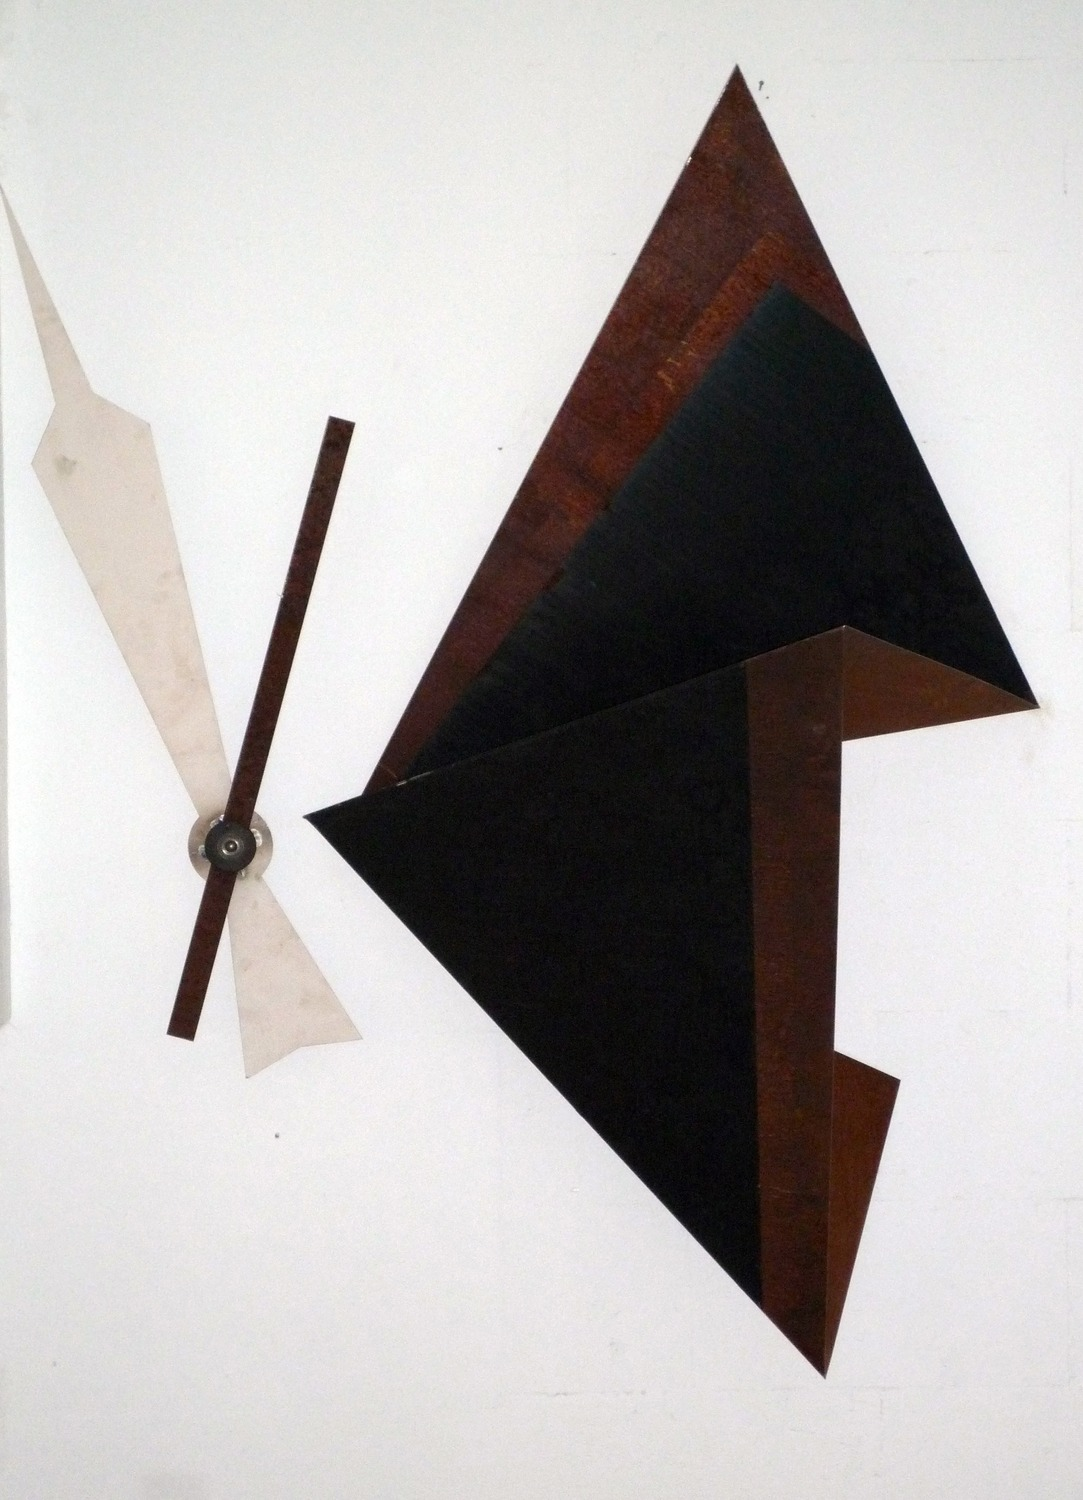 A Drop In Time (45 minutes later), 2009, Various metals, powder coating, paint, 166 x 136 x 41 cm